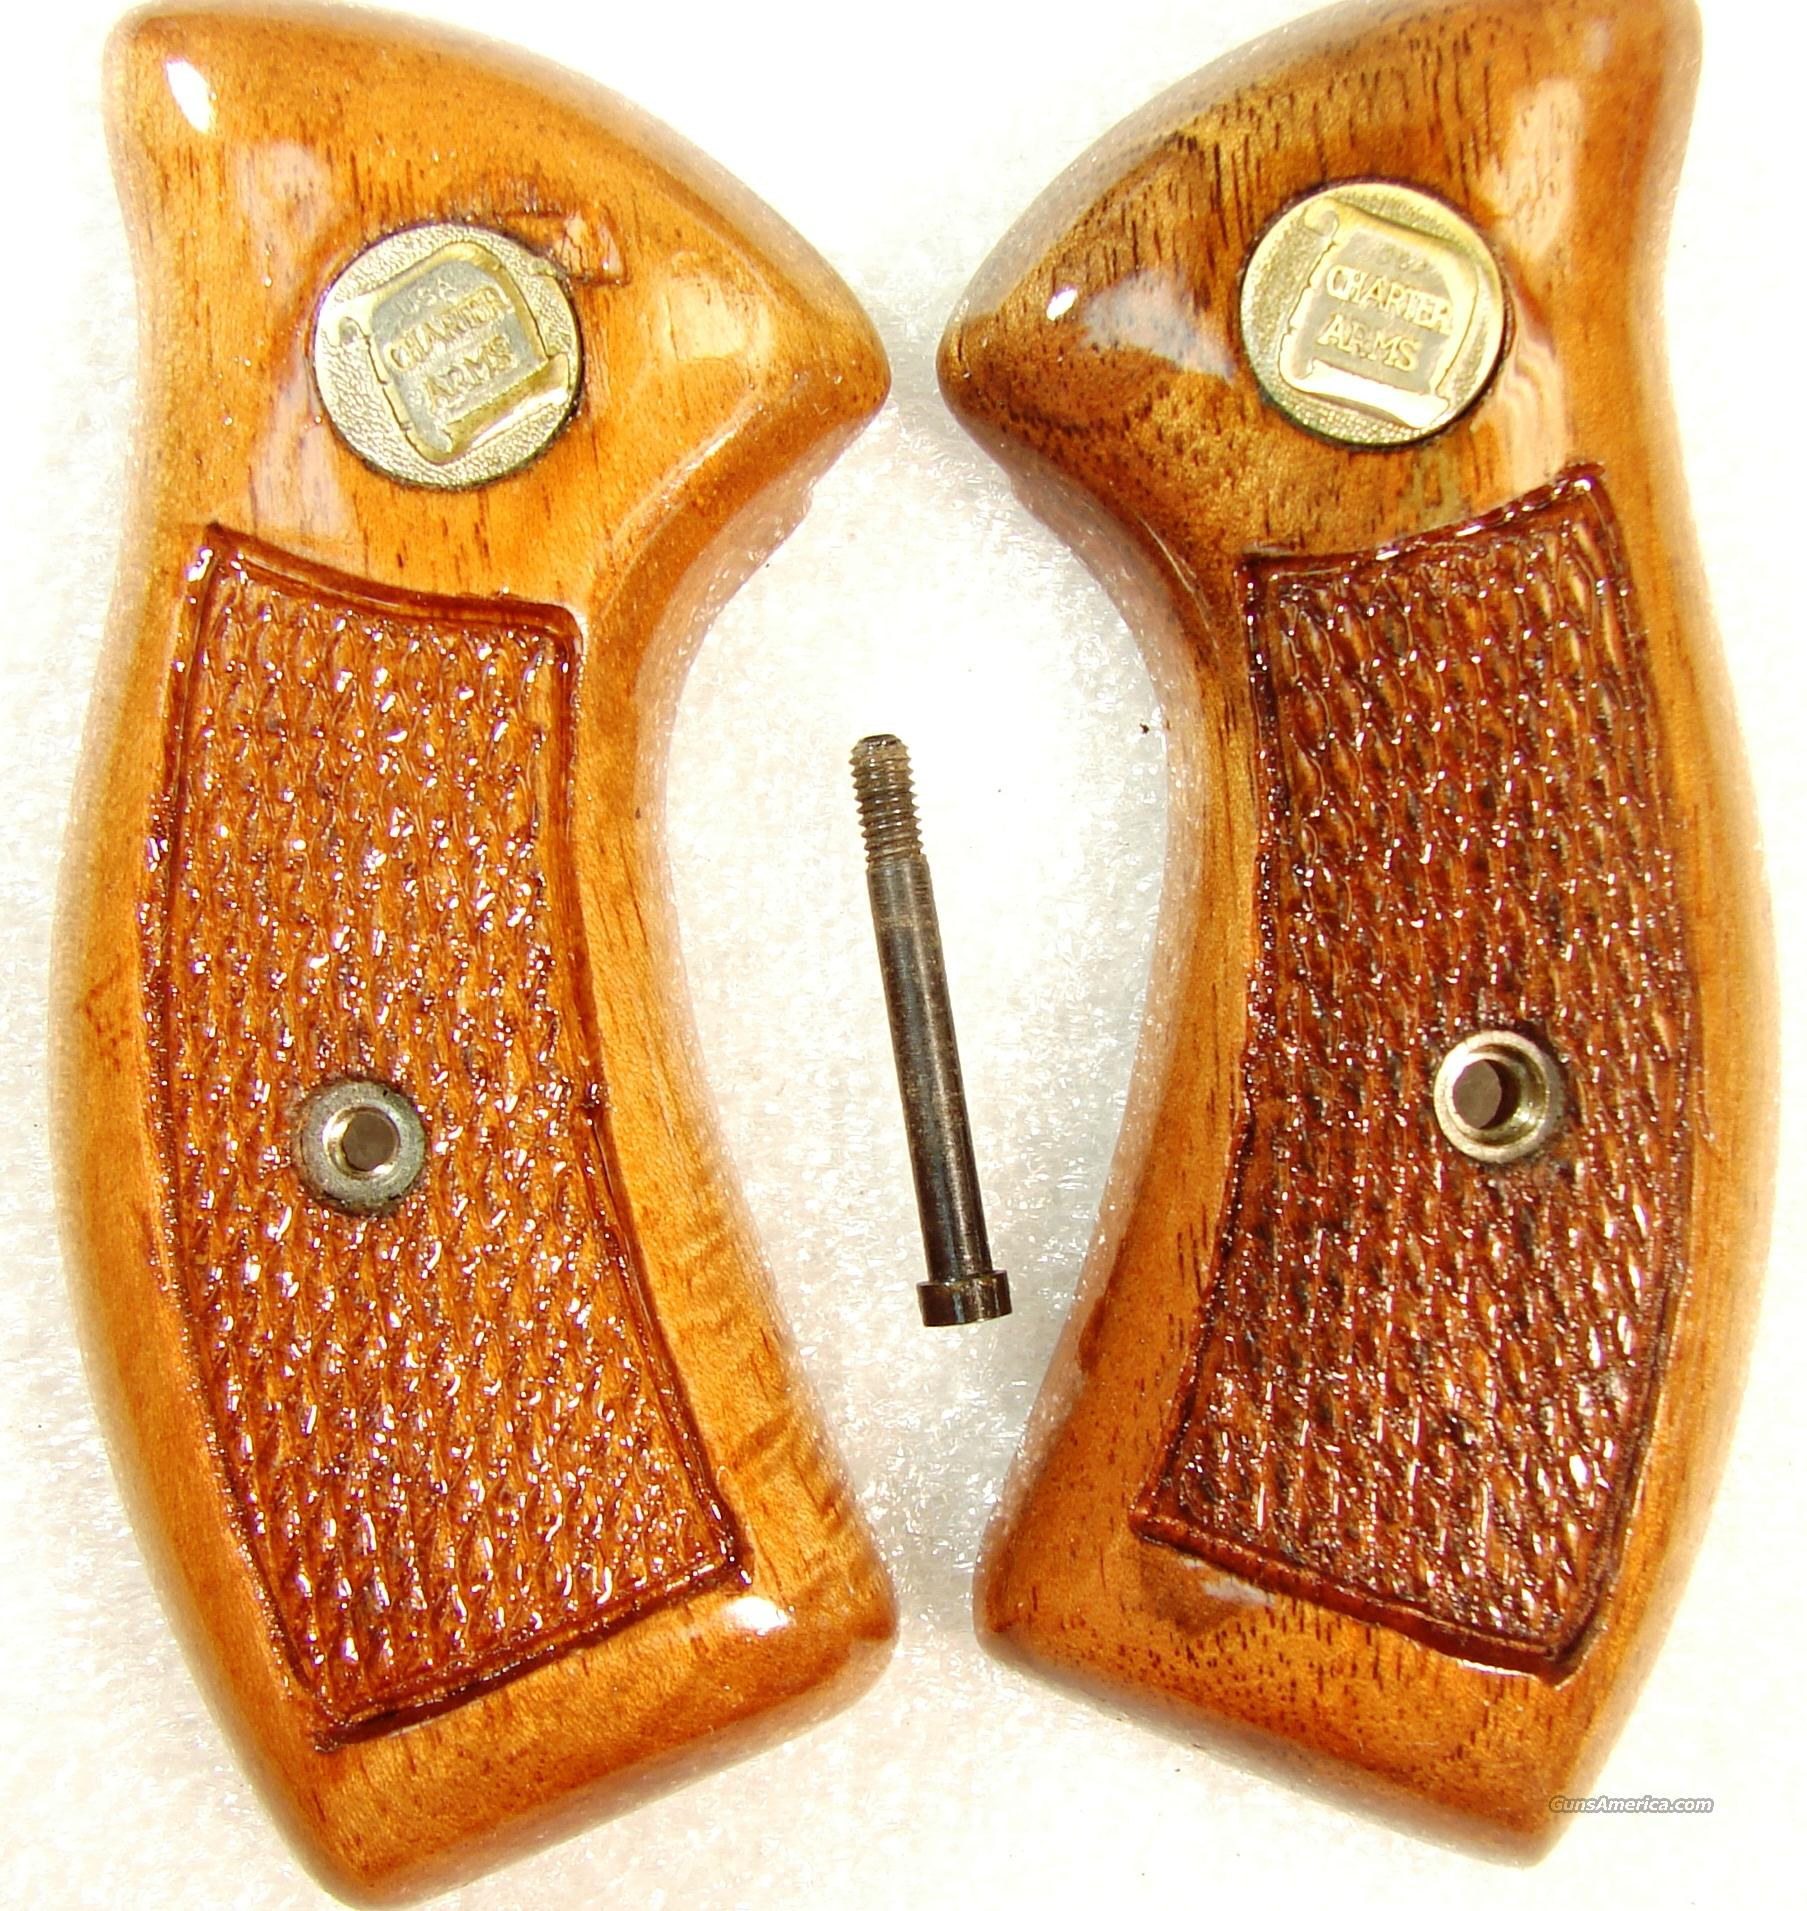 Grips Charter Arms Factory Goncalo 1970s Excellent Refinish Undercover Bulldog Pathfinder Undercoverette   Non-Guns > Gunstocks, Grips & Wood